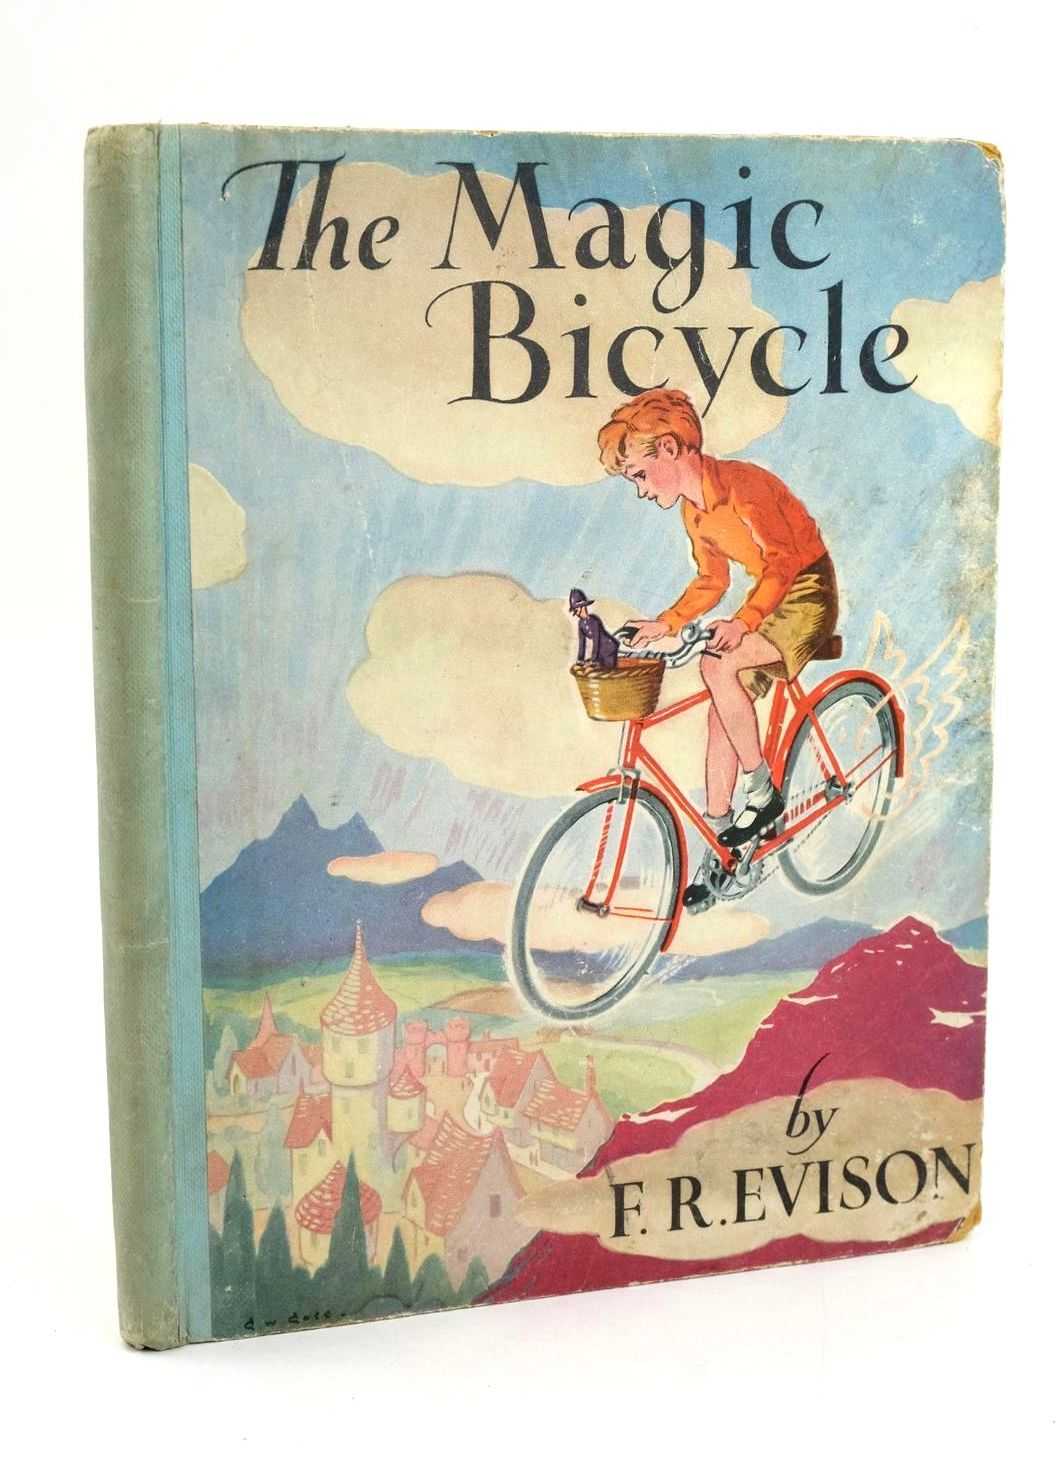 Photo of THE MAGIC BICYCLE written by Evison, F.R. illustrated by Goss, G.W. published by Hammond, Hammond & Company Ltd. (STOCK CODE: 1319202)  for sale by Stella & Rose's Books